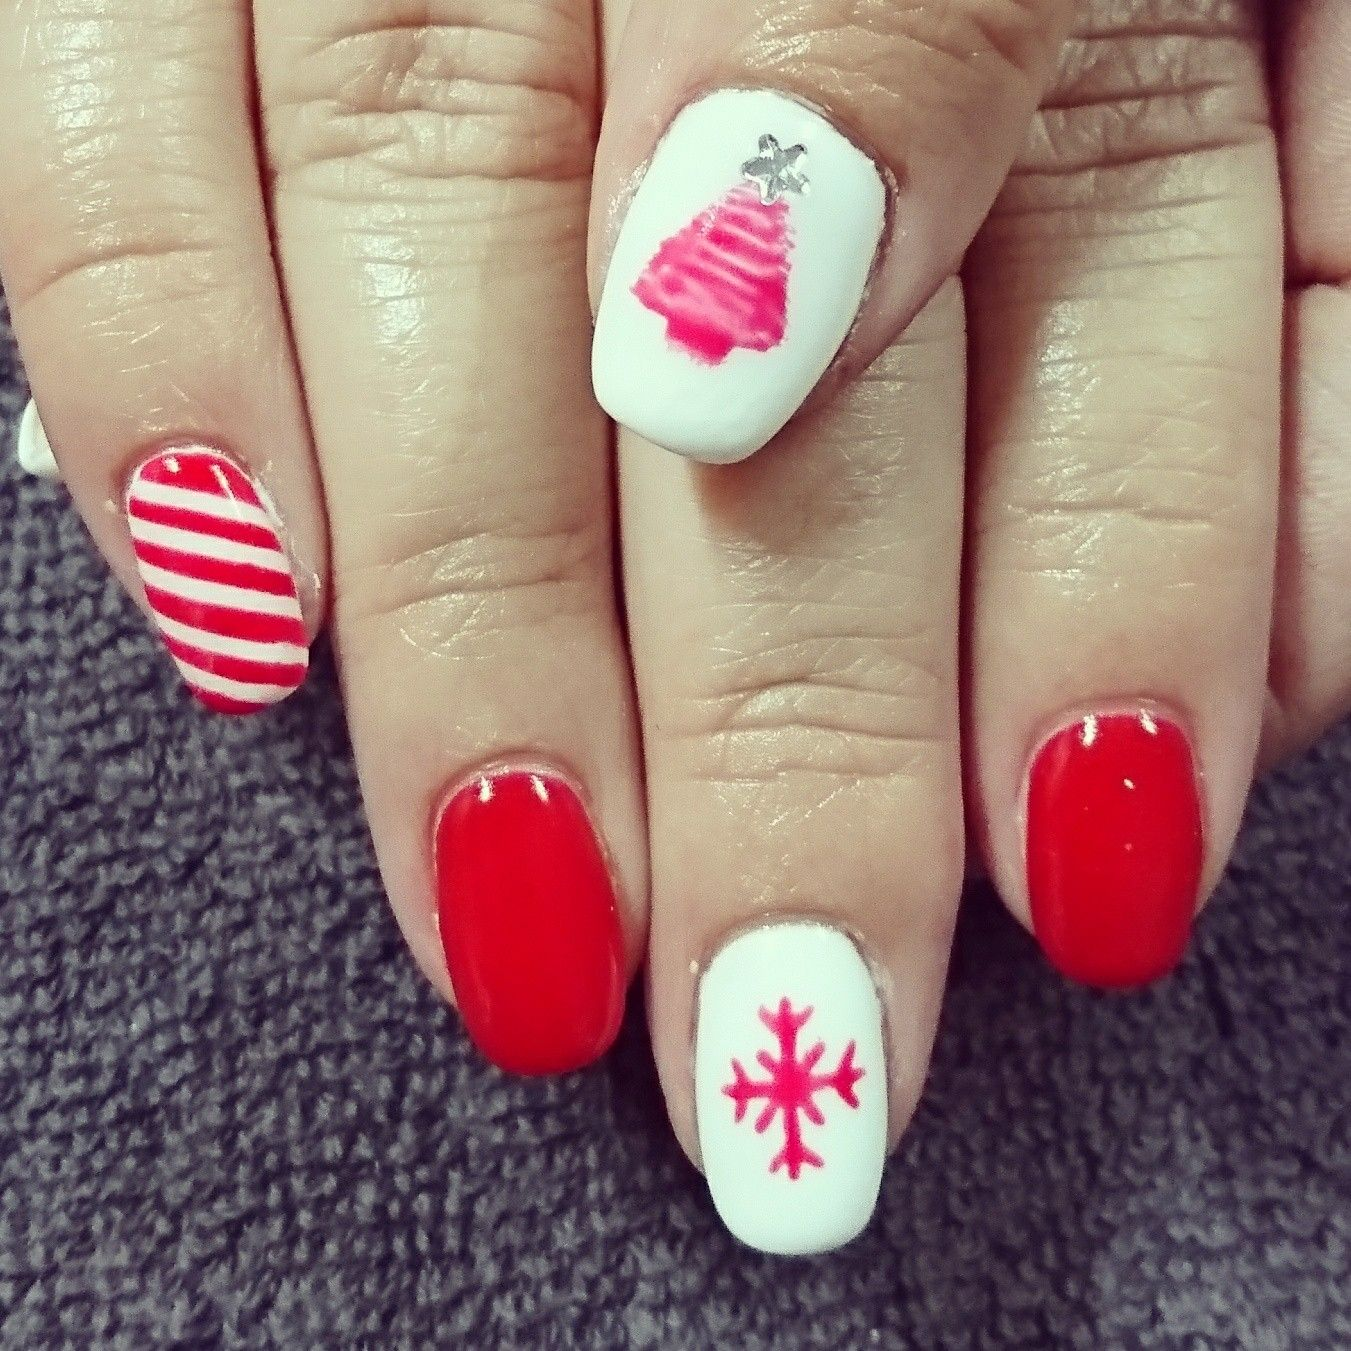 Red and white Christmas nails with stripes, snowflake and Christmas tree